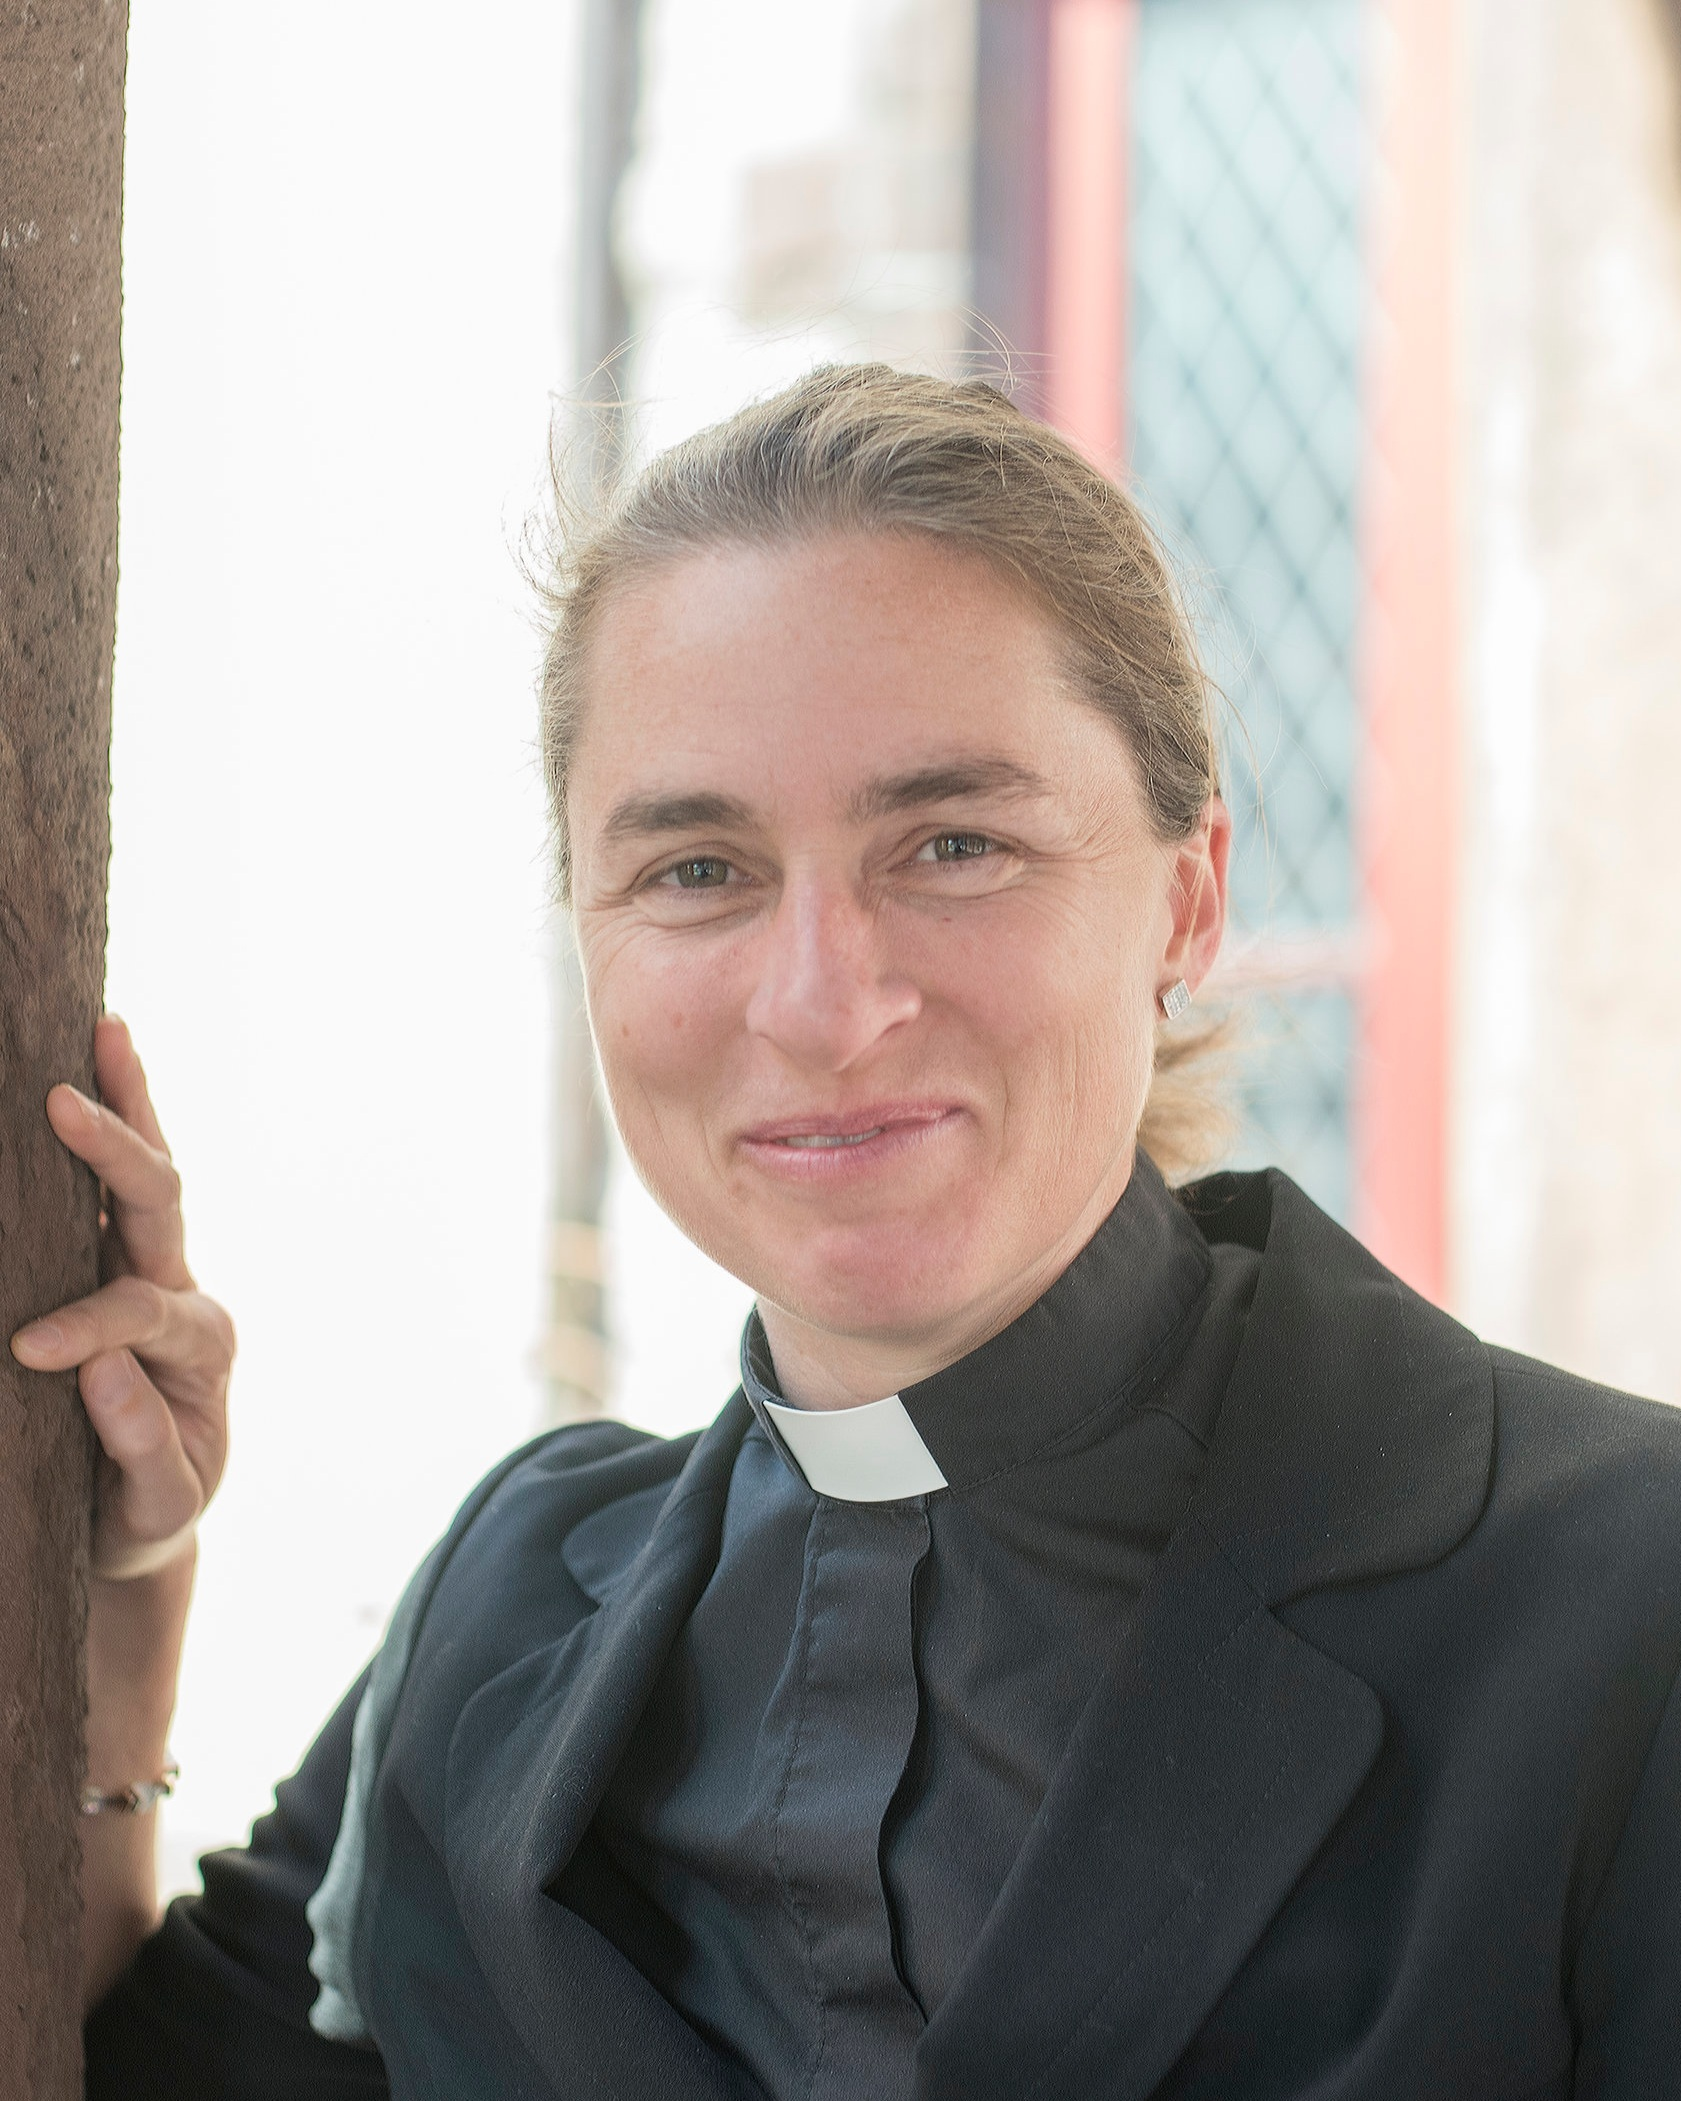 Welcome - Read a welcome message from our chaplain, Rev. Rita Powell